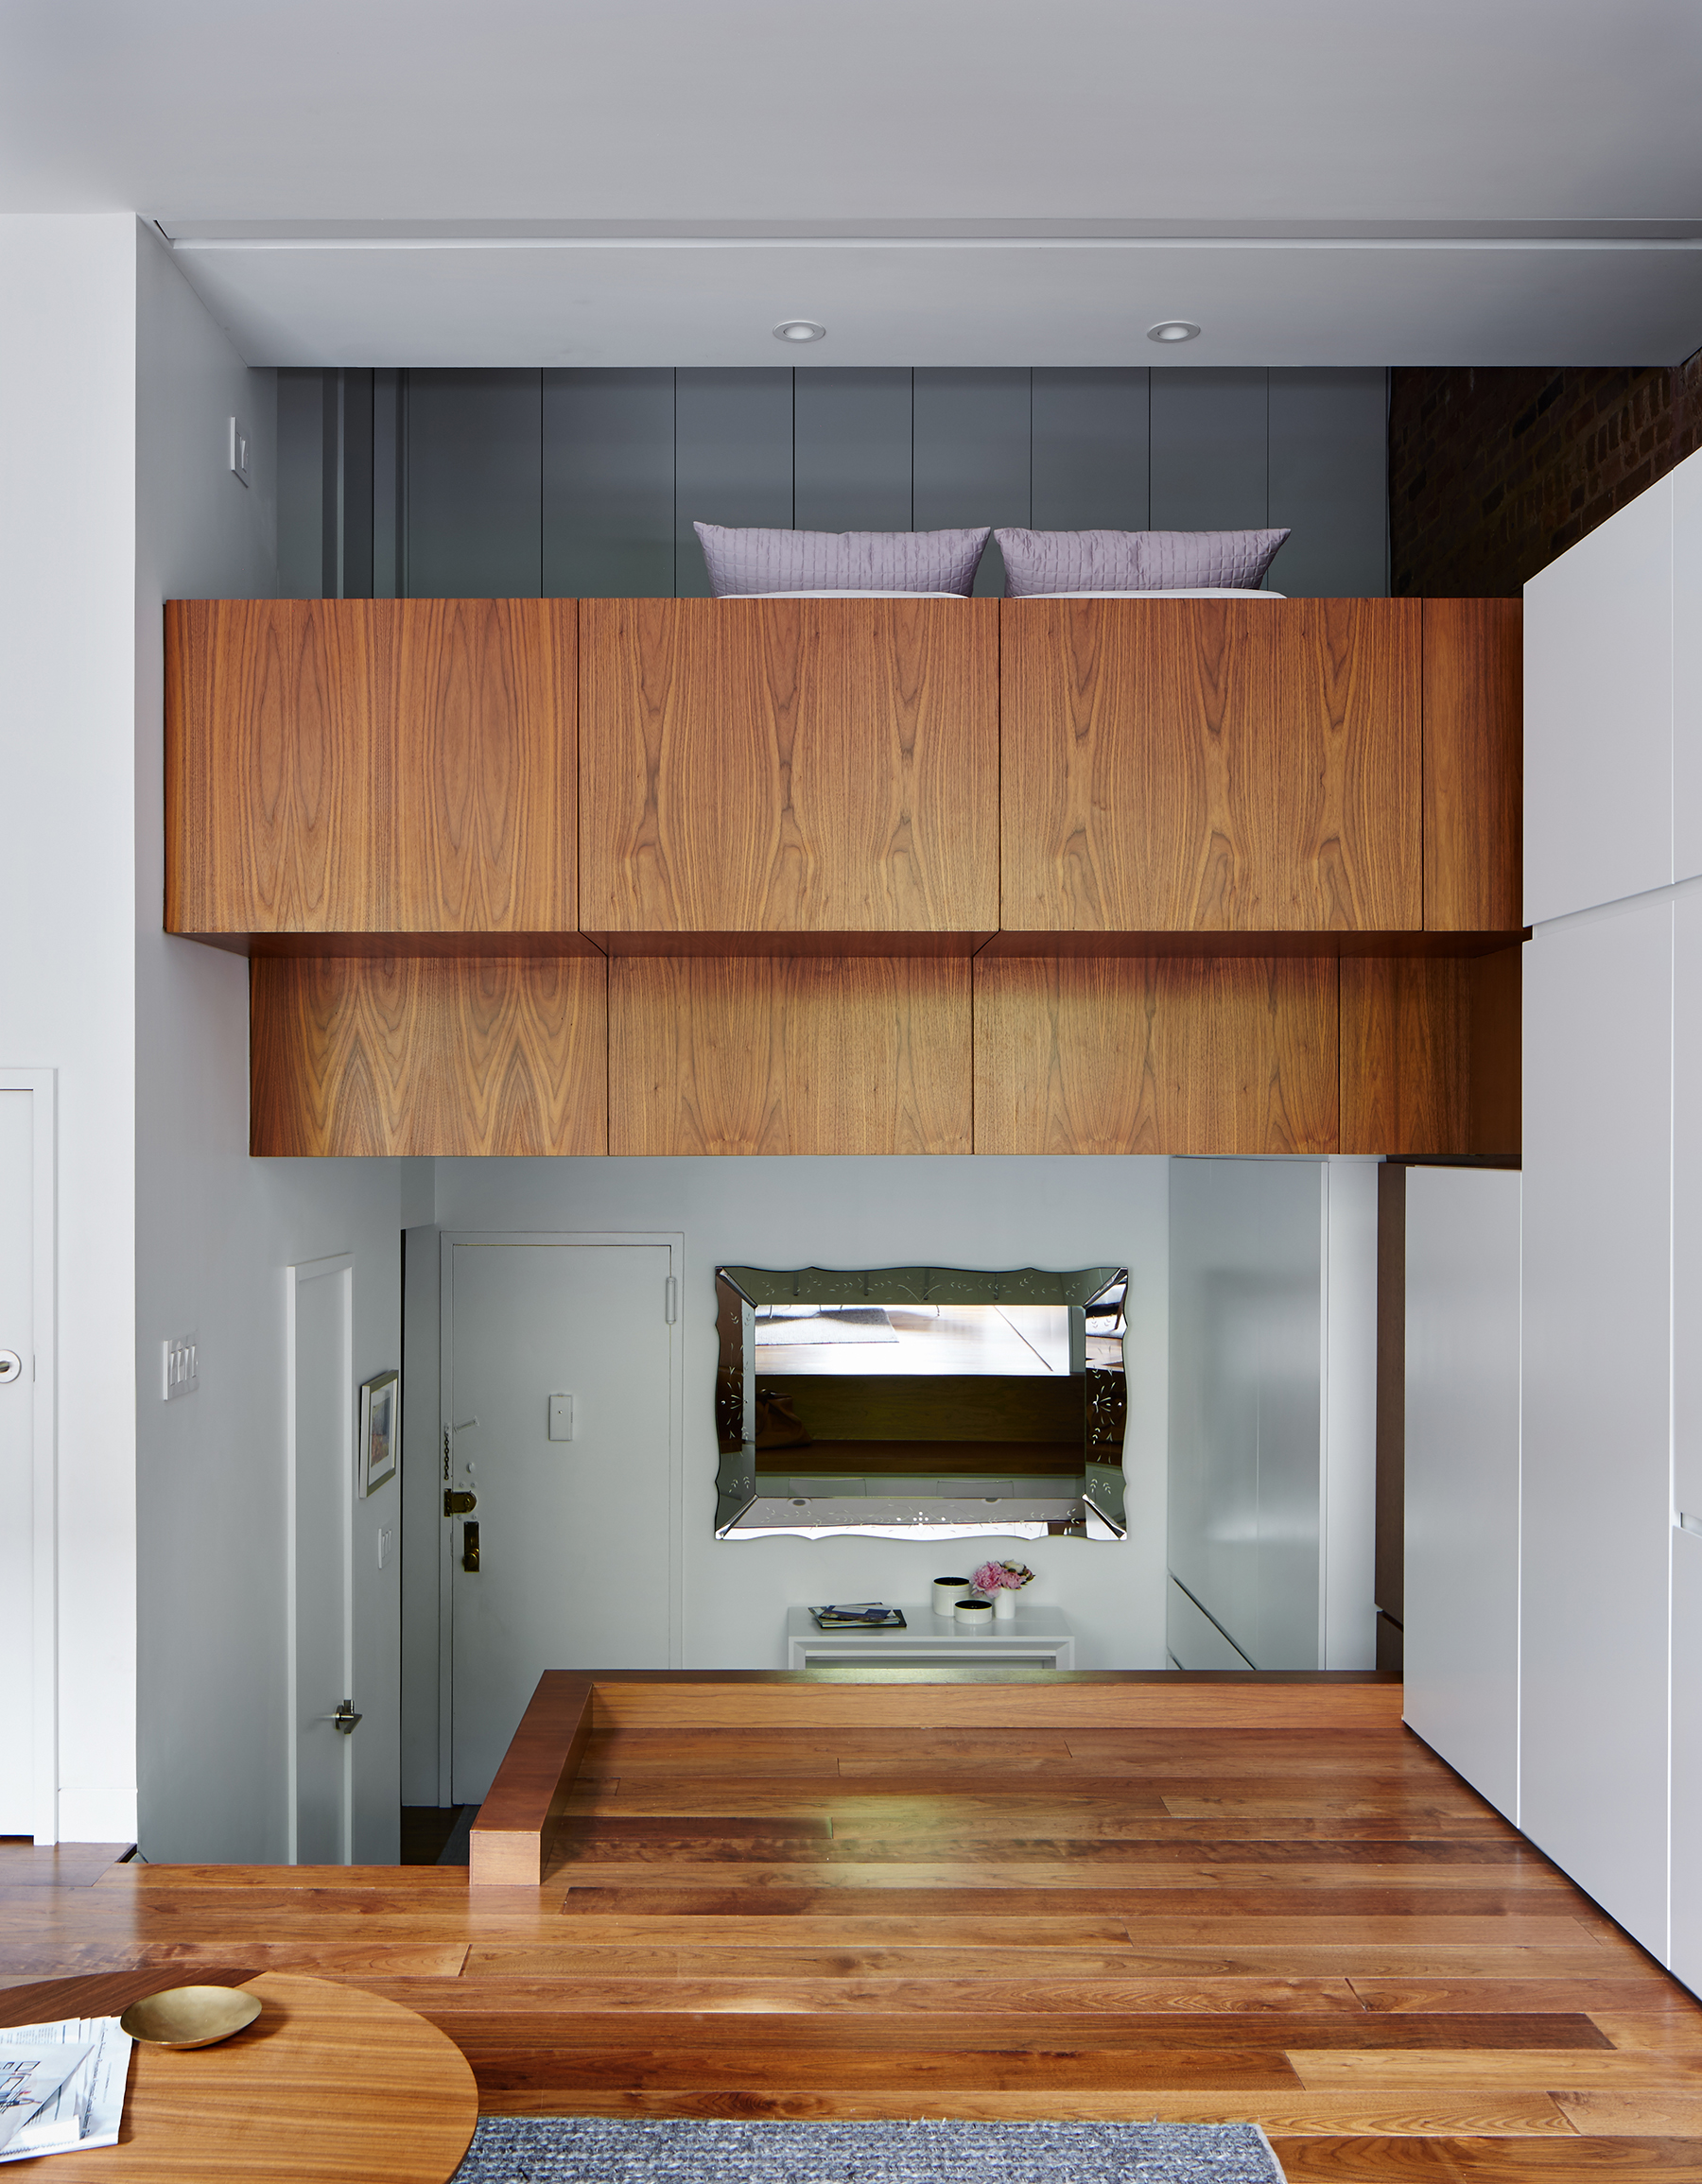 STADT Architecture, Loft, Vertical Loft, Triple Mint, walnut, cabinetry, STADT, nyc architects, ny apartment renovation